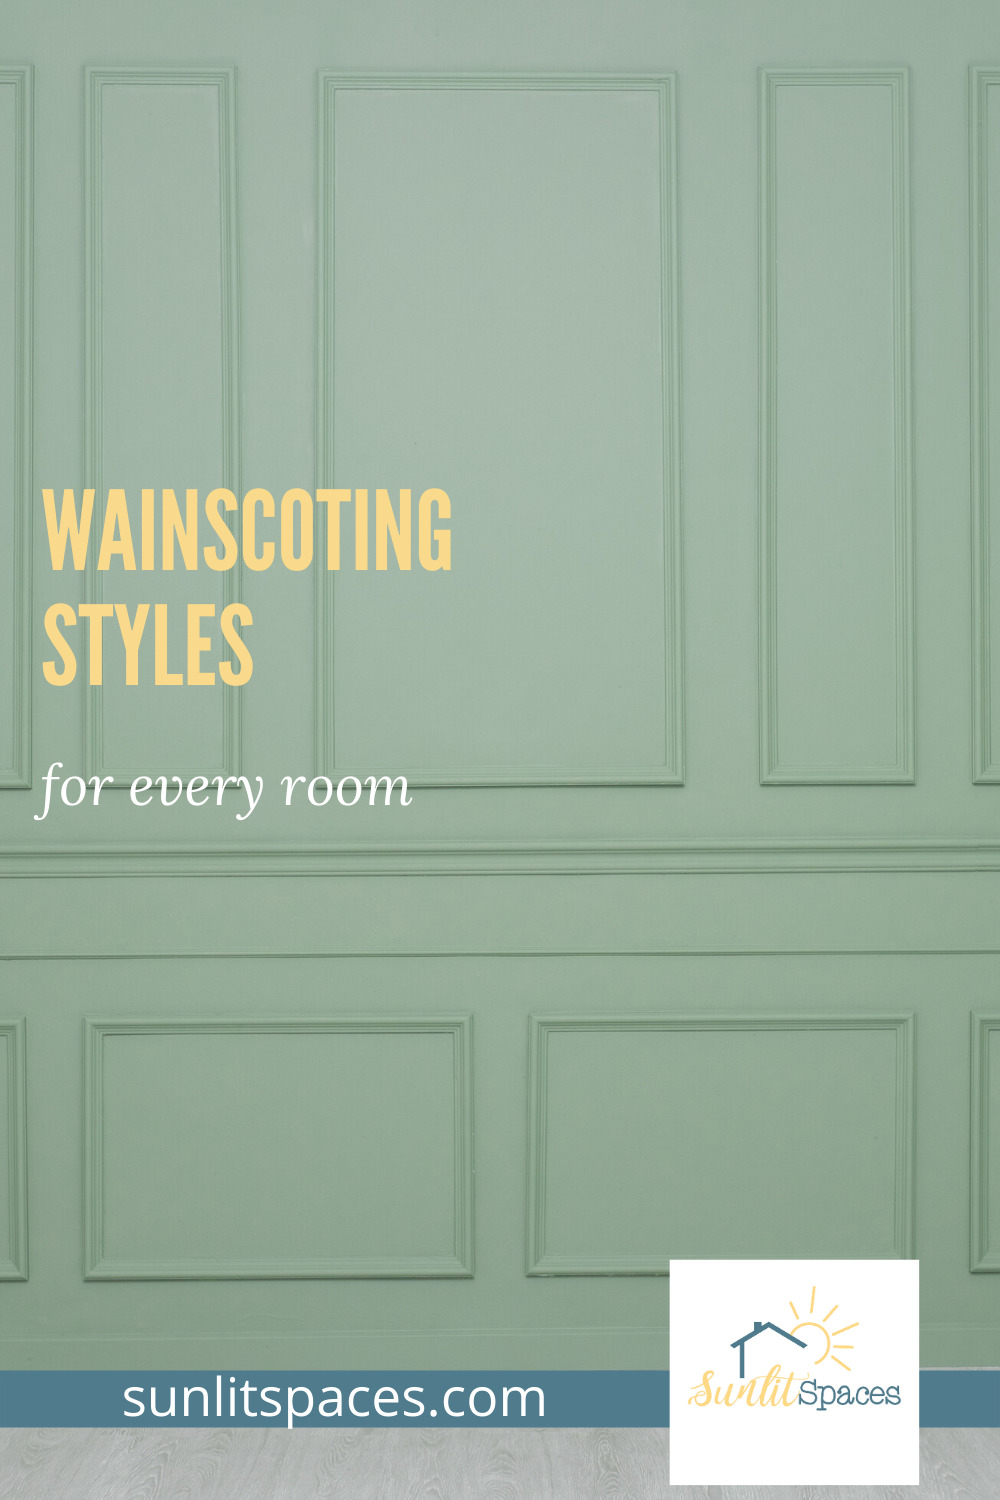 I love wainscoting. They make a house look amazing. They are definitely a WOW factor when it comes to woodworking. Read this post for ideas that you can use in your home. This is an easy DIY project. #wainscotingstyles #DIYprojectideas #homedecor #sunlitspacesblog